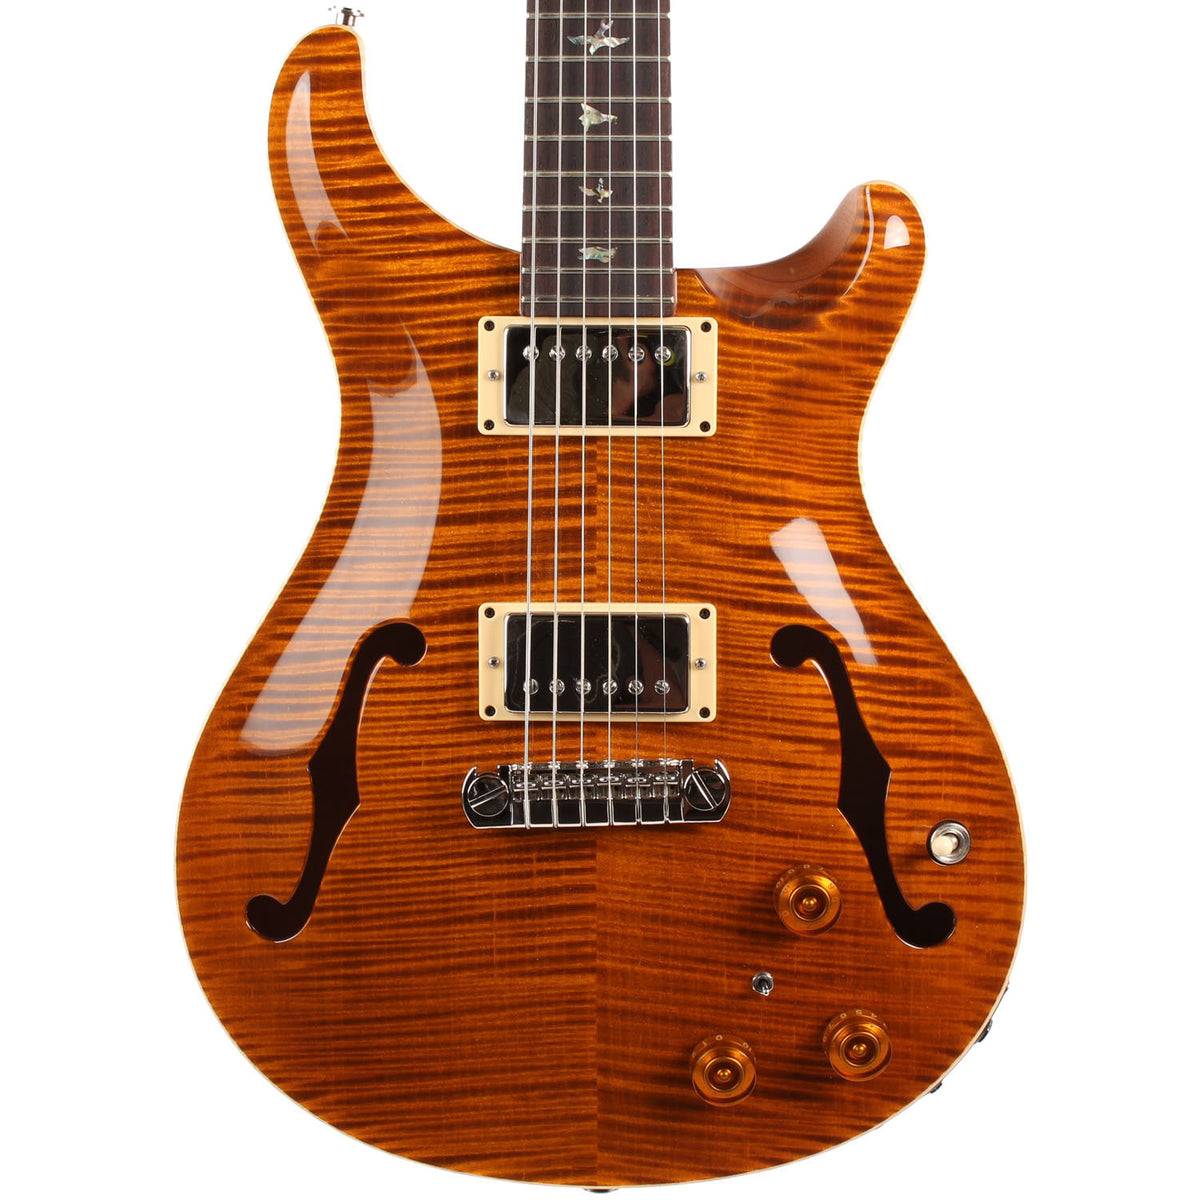 2003 PRS McCarty Hollowbody 2 - Garrett Park Guitars  - 1